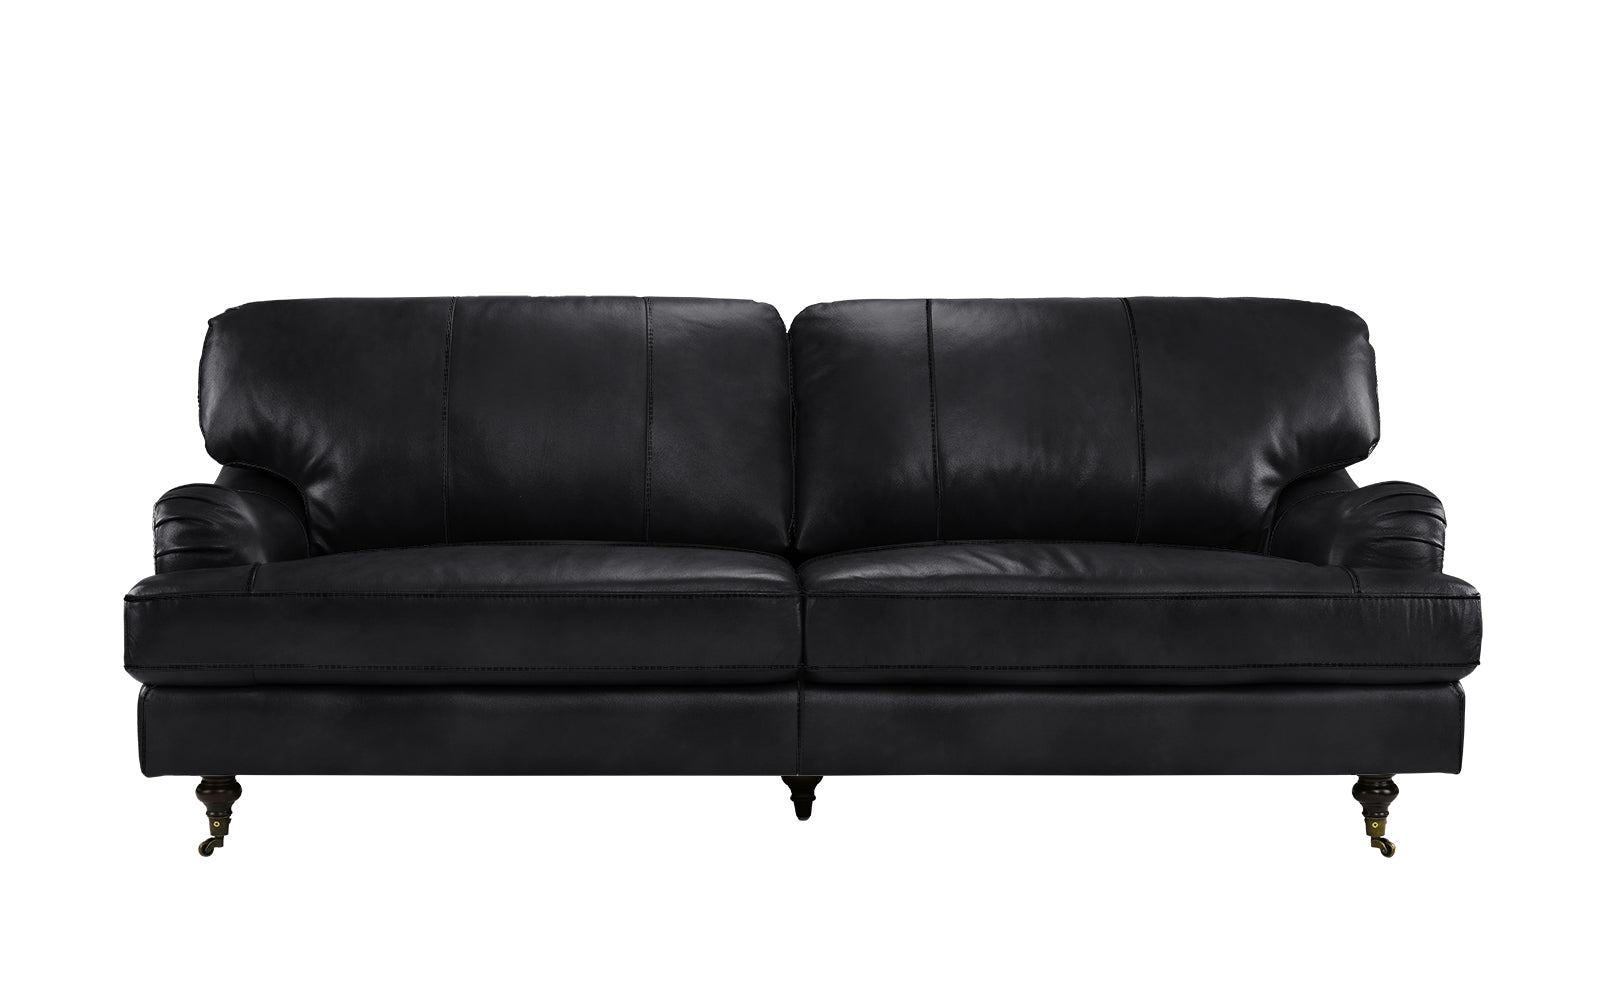 Leather Sofa Casters Image